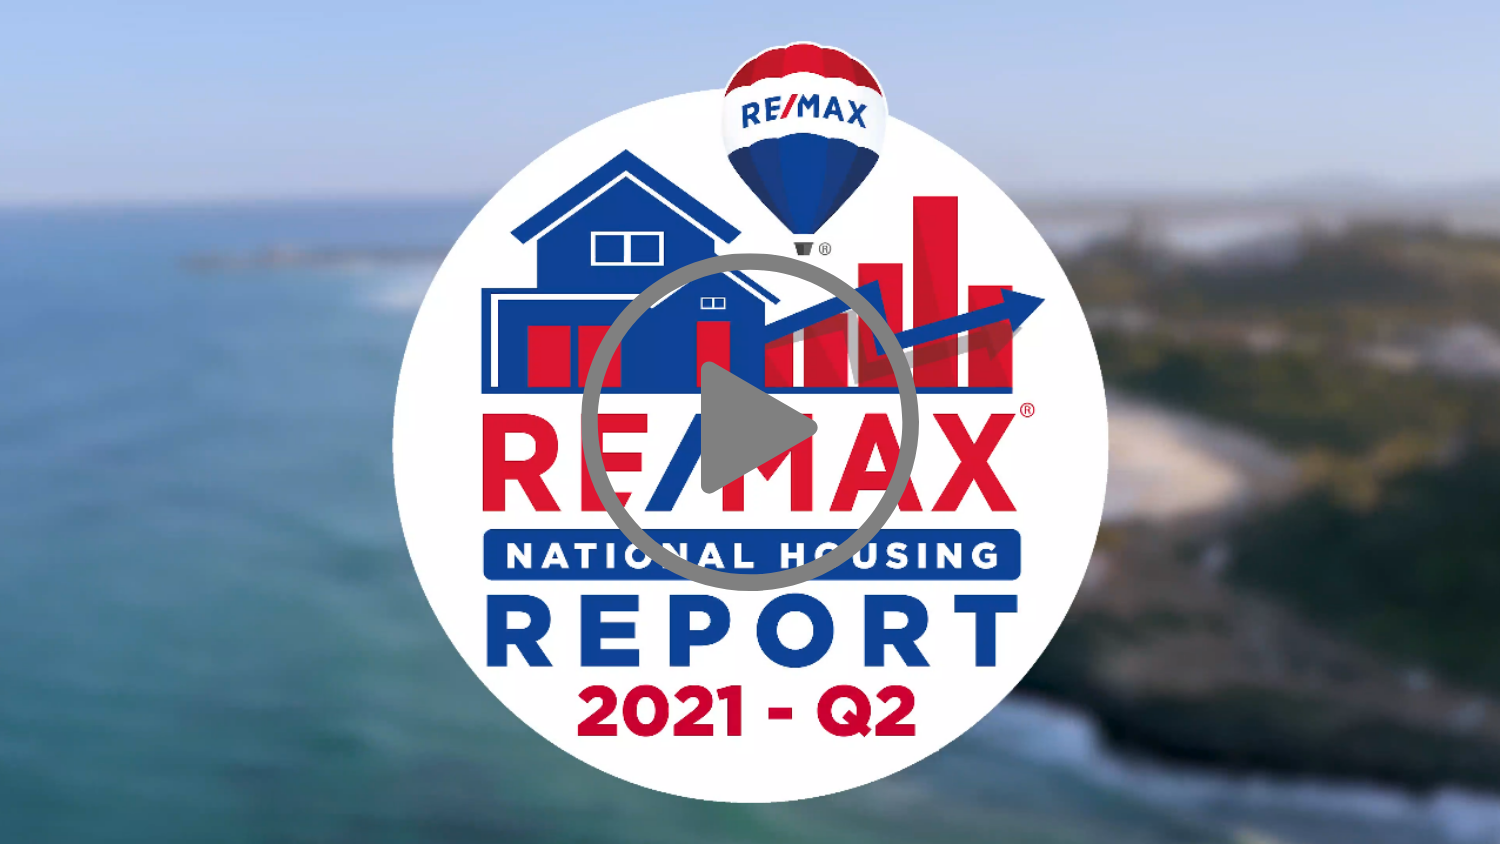 RE/MAX National Housing Report Q2 2021